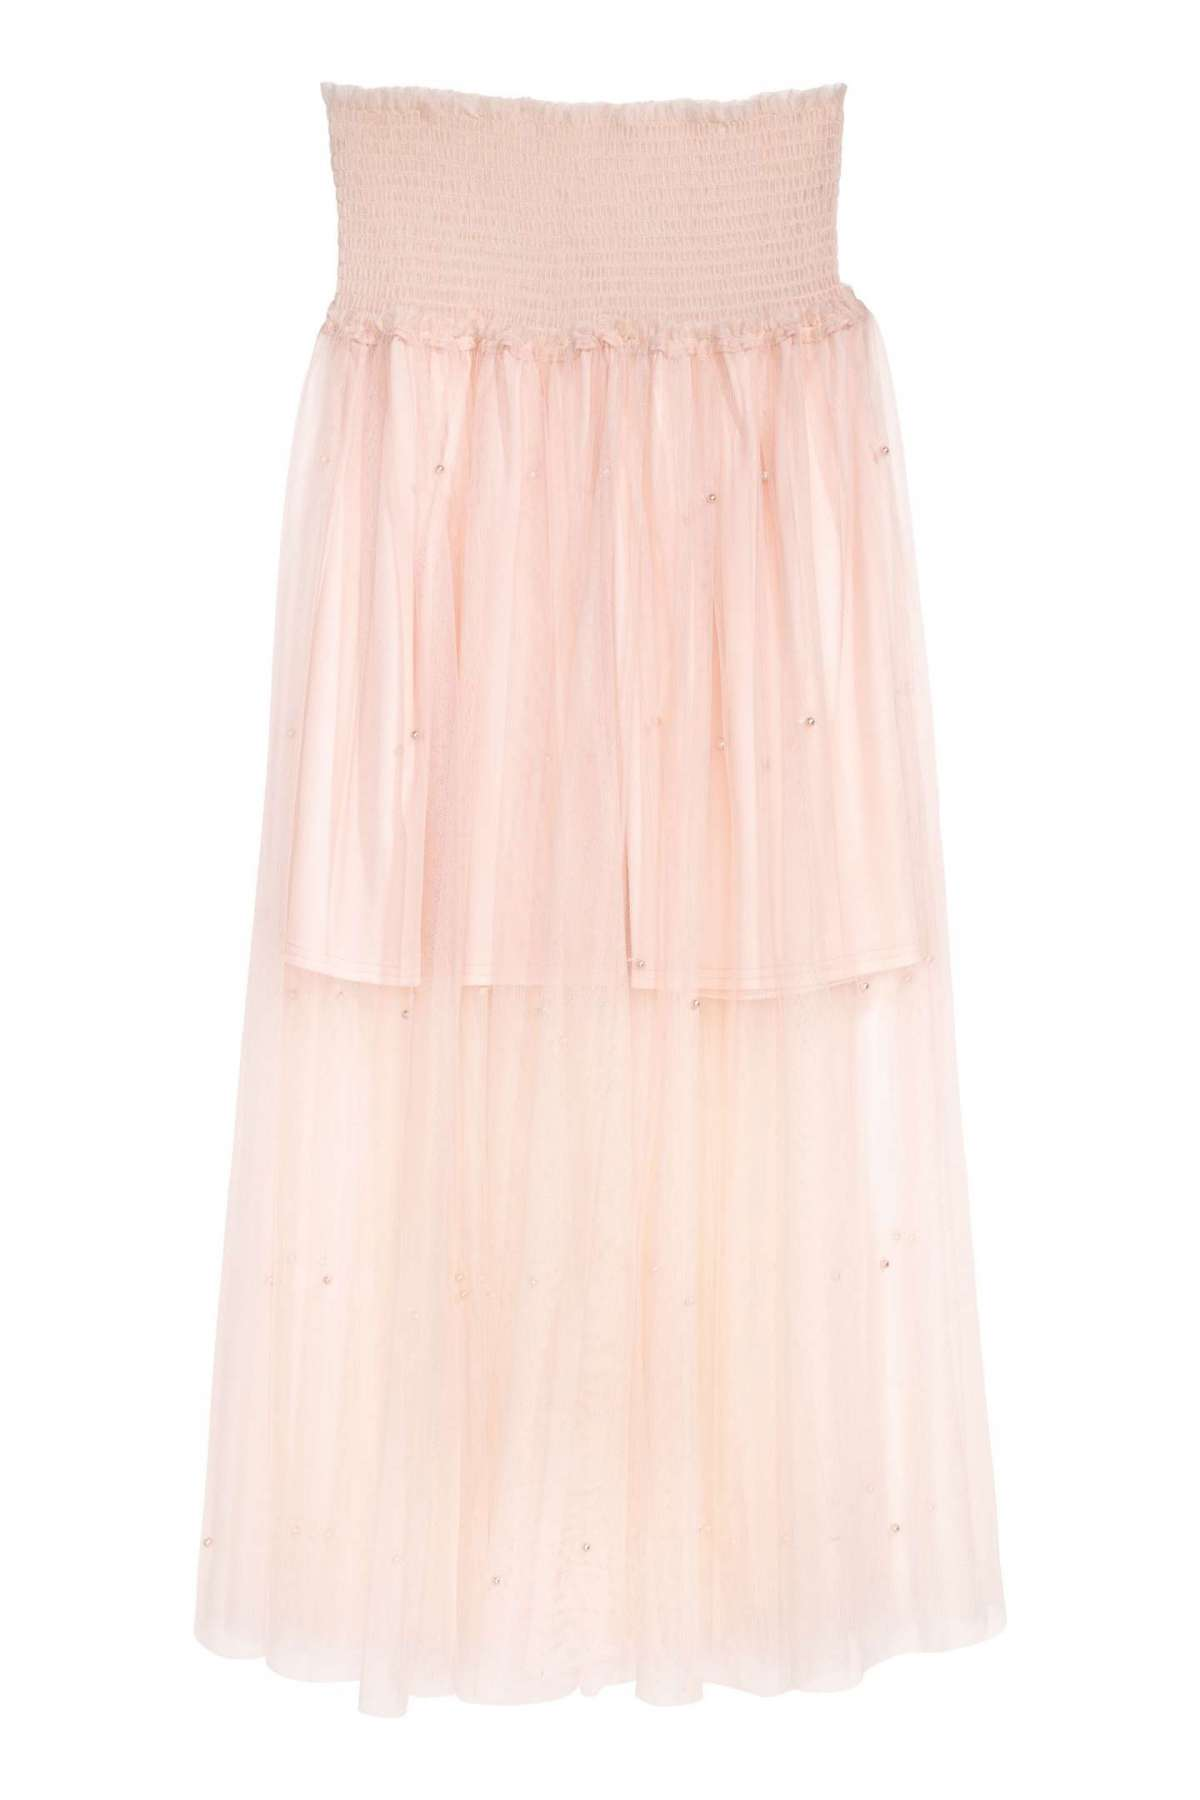 Gonna di tulle H&M rosa